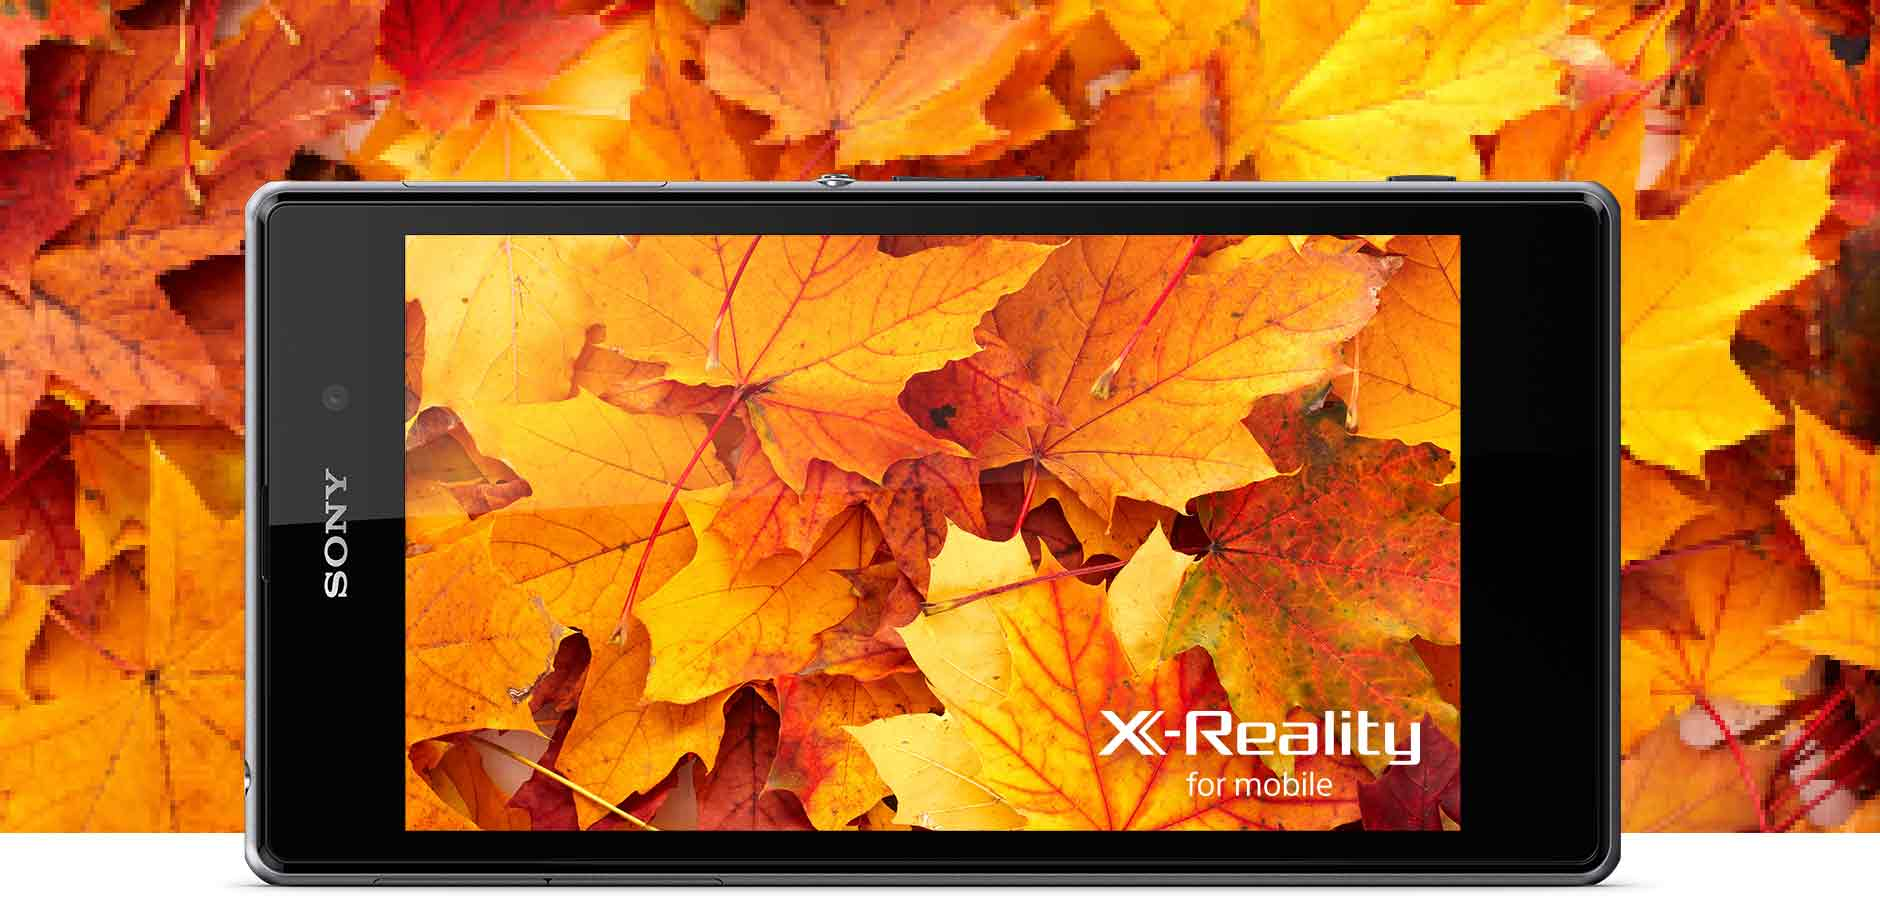 The best camera phone has Sony's latest picture engine: X-Reality for mobile.